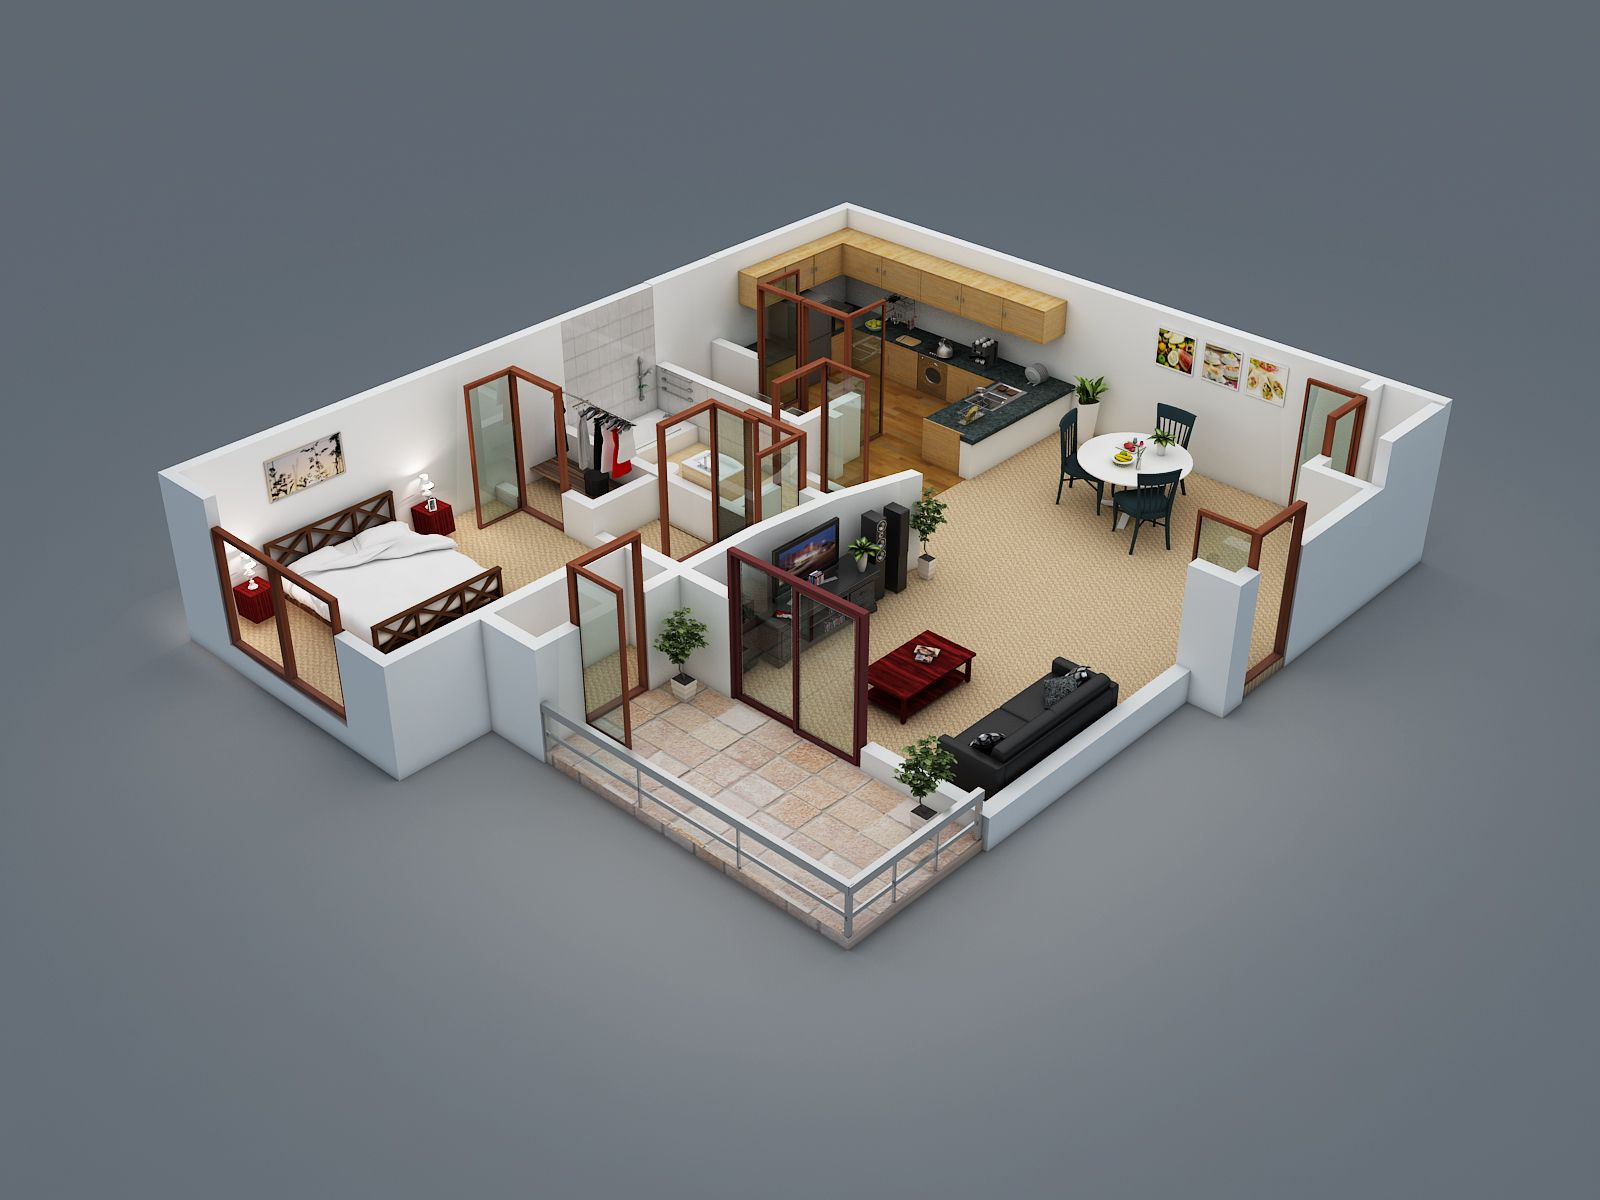 Http Www Rayvatengineering Com 3d Floor Plan One Of The Main Things To Keep In Mind While C Open Concept House Plans Floor Plan Design Cottage Floor Plans